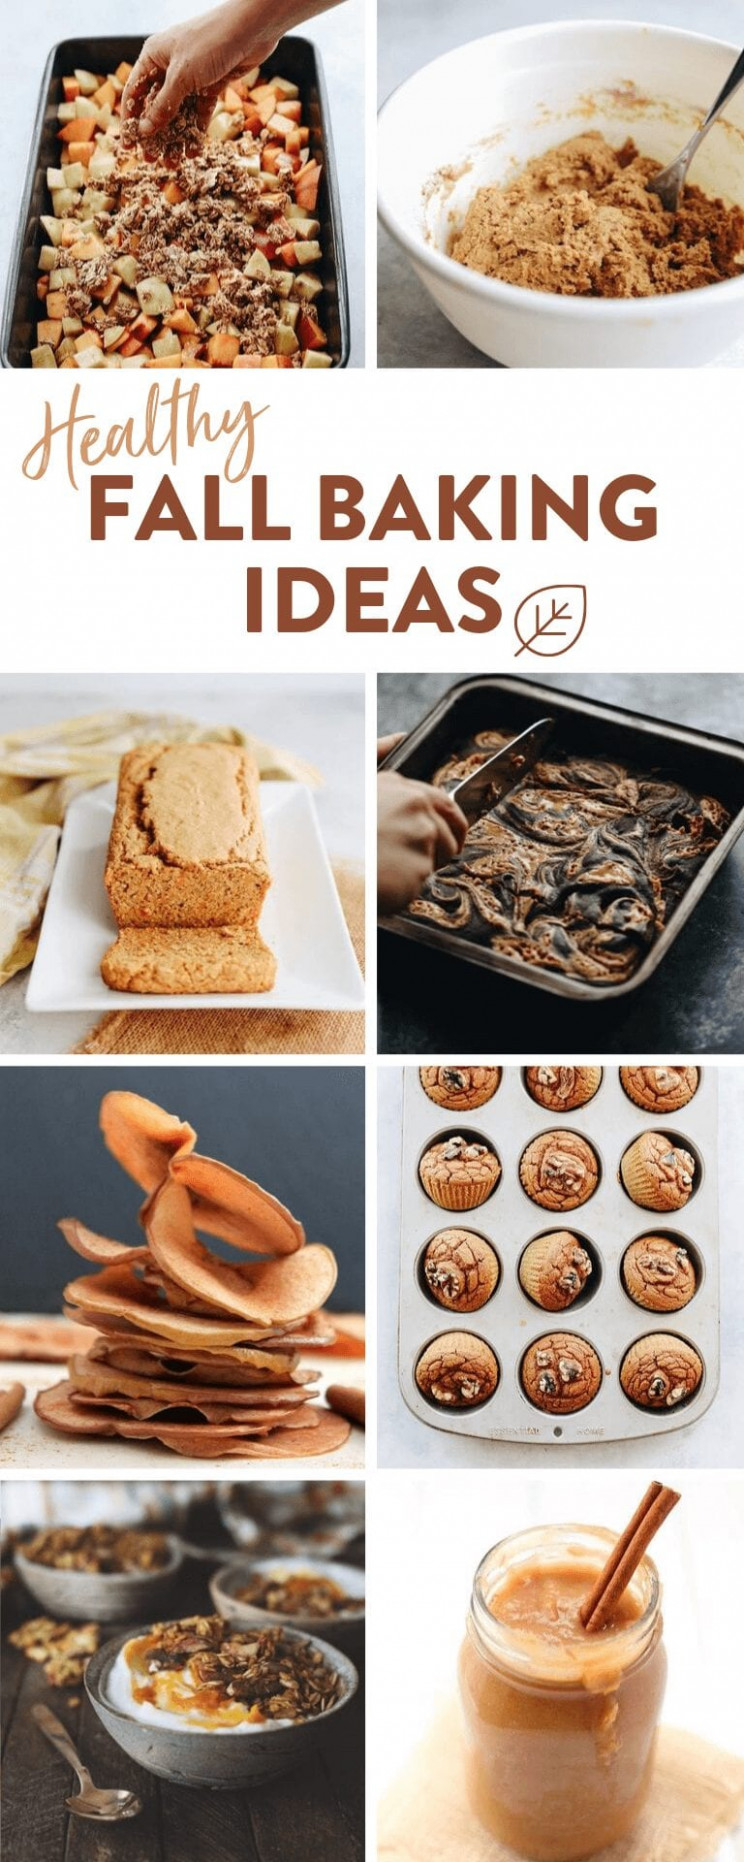 10 Healthy Fall Baking Recipe Ideas + Desserts - The Healthy ..